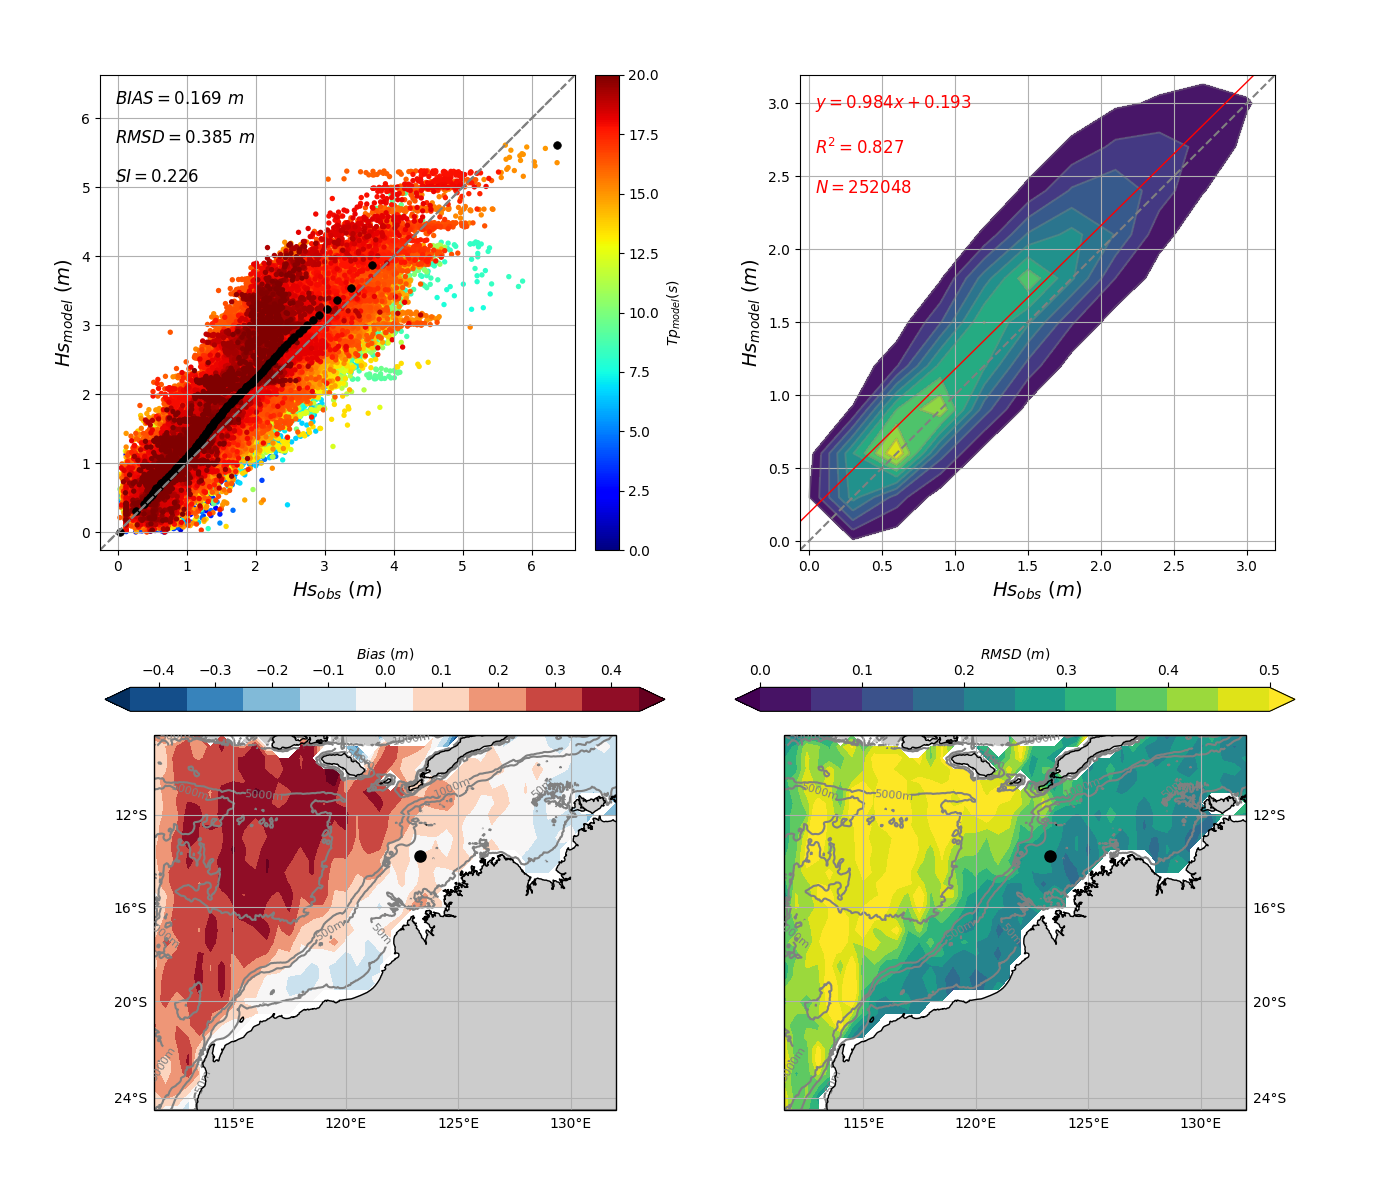 Figure 3. Validation against satellite altimeters of MetOcean Solutions' 5km Australia Northwest Shelf SWAN domain using the old physics source terms. Overall scatter diagram and scatter density are shown at the top. Model bias and RMSD are presented at the bottom.